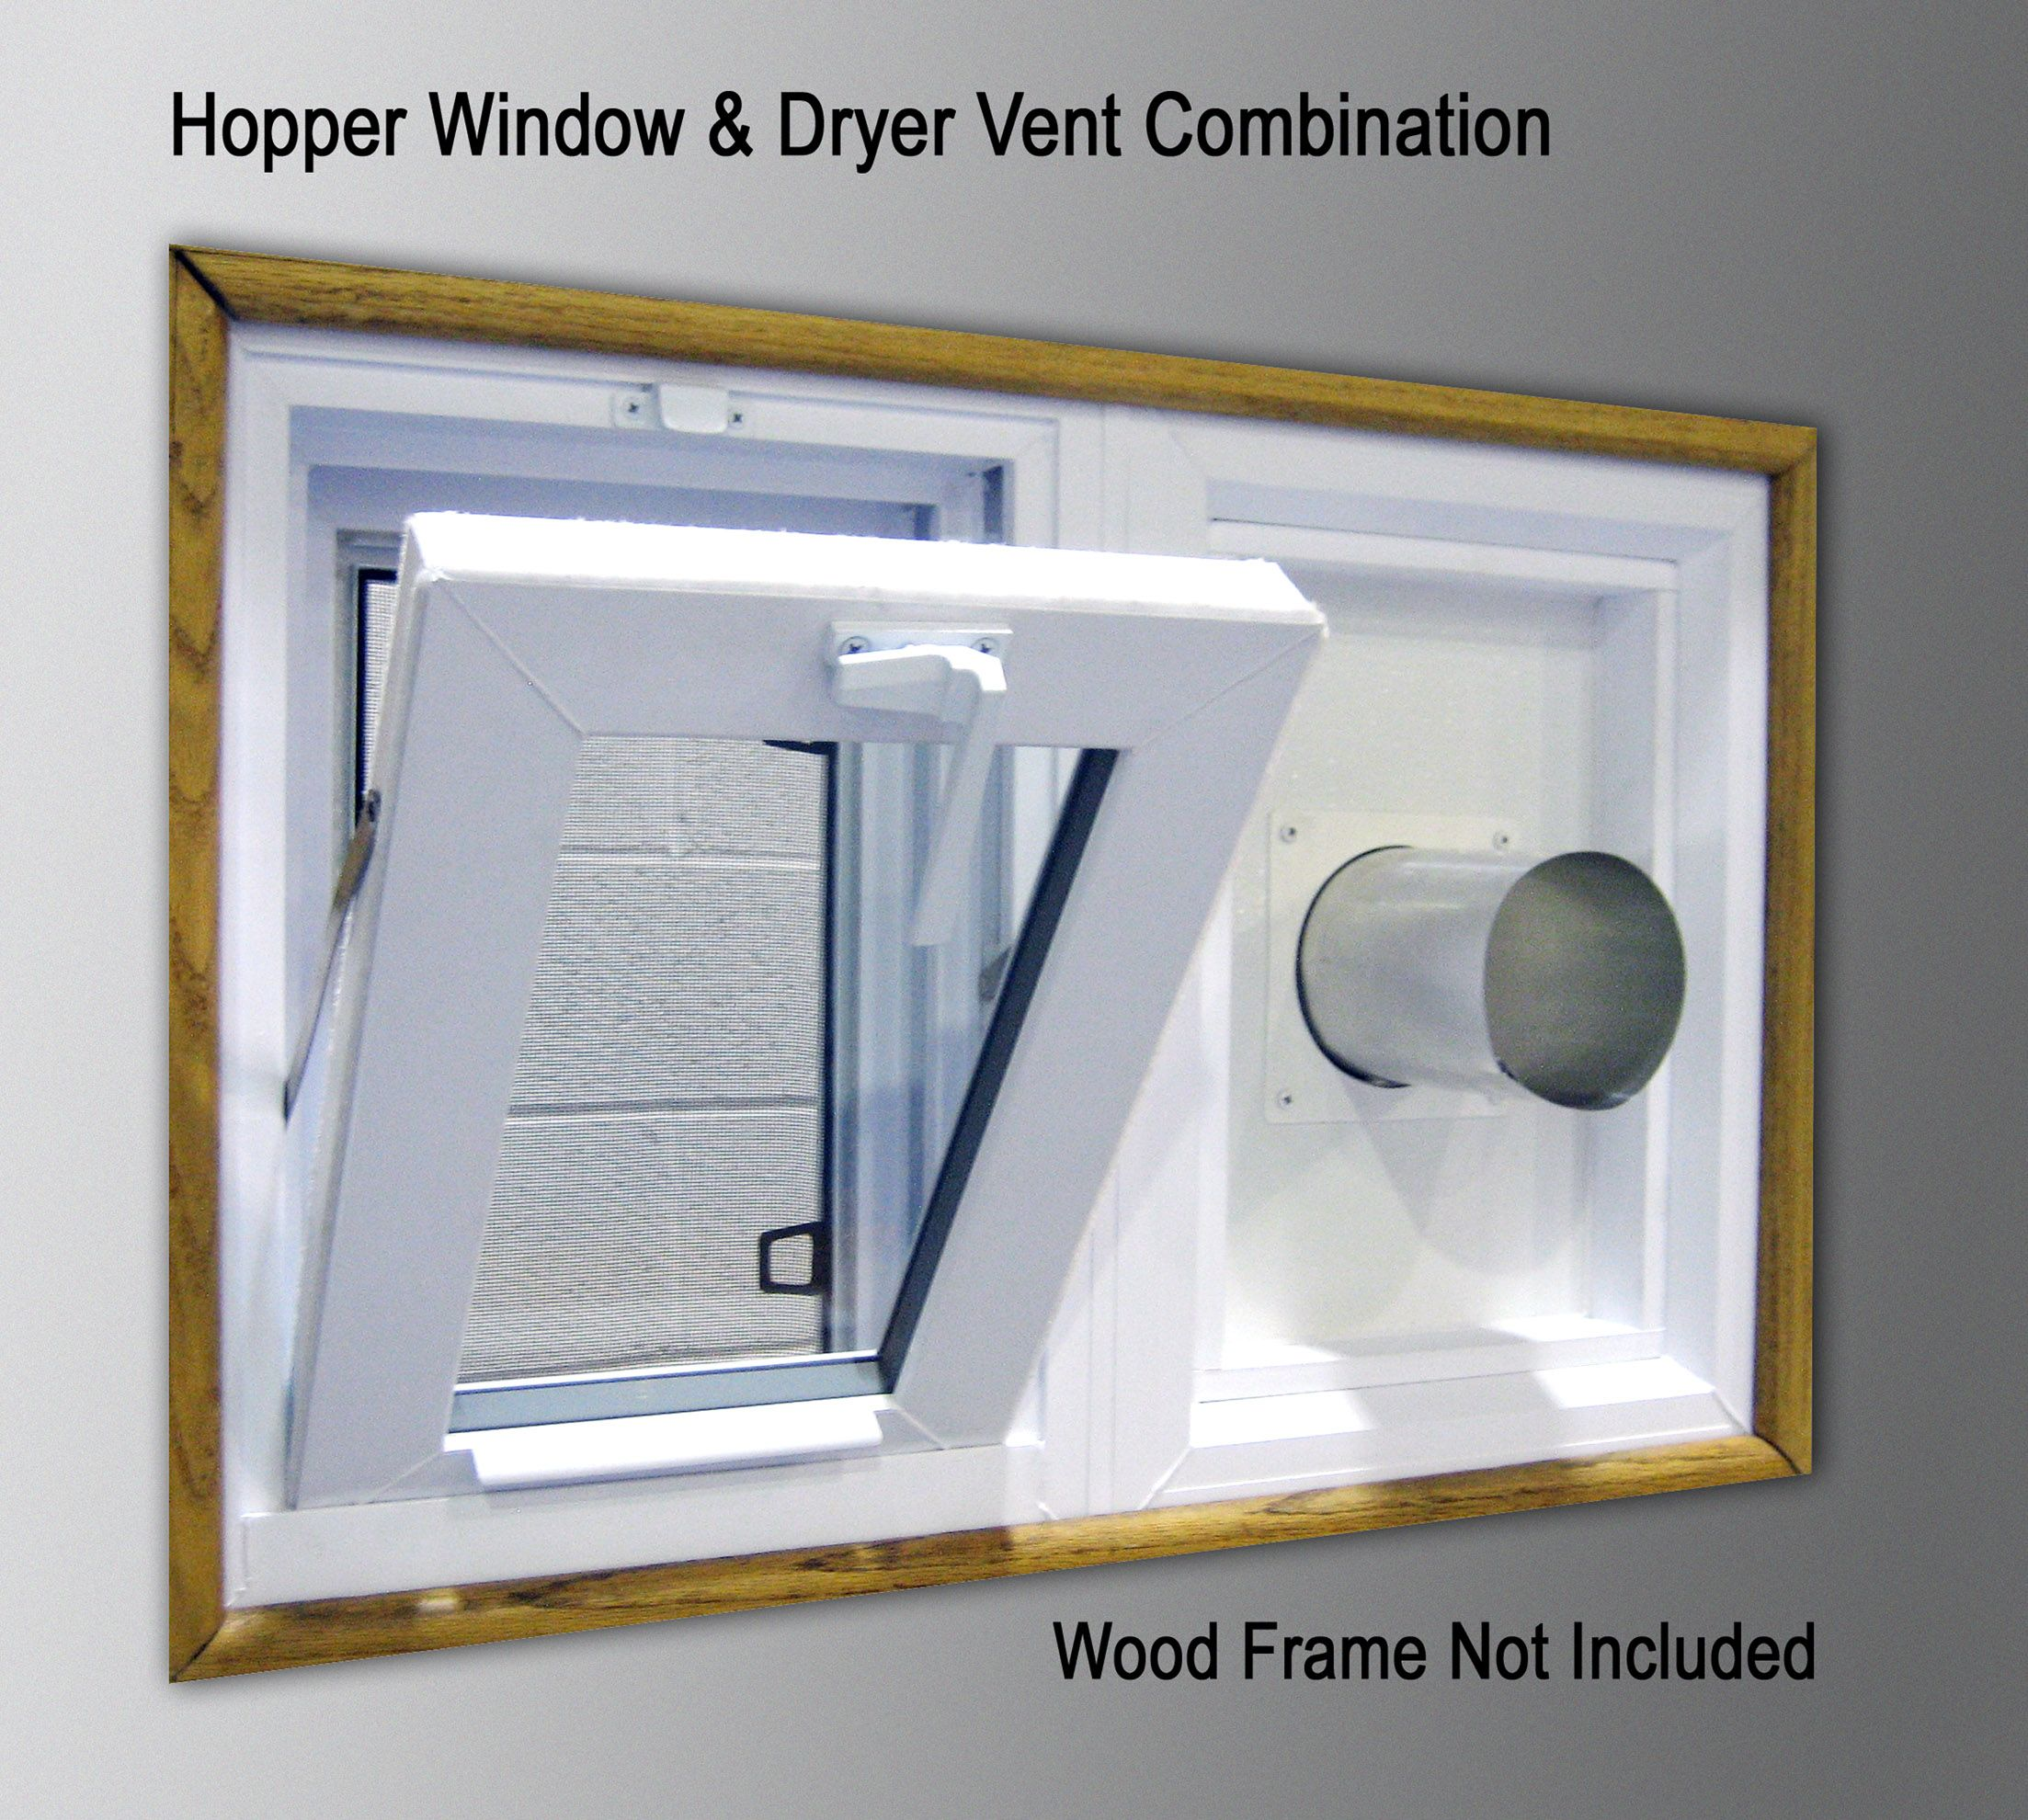 This Product Is Shipped Free In Continental Usa Weathermaster Combination Hopper Dryer Vent Windows Are Strong Fully Embled And Secure Made